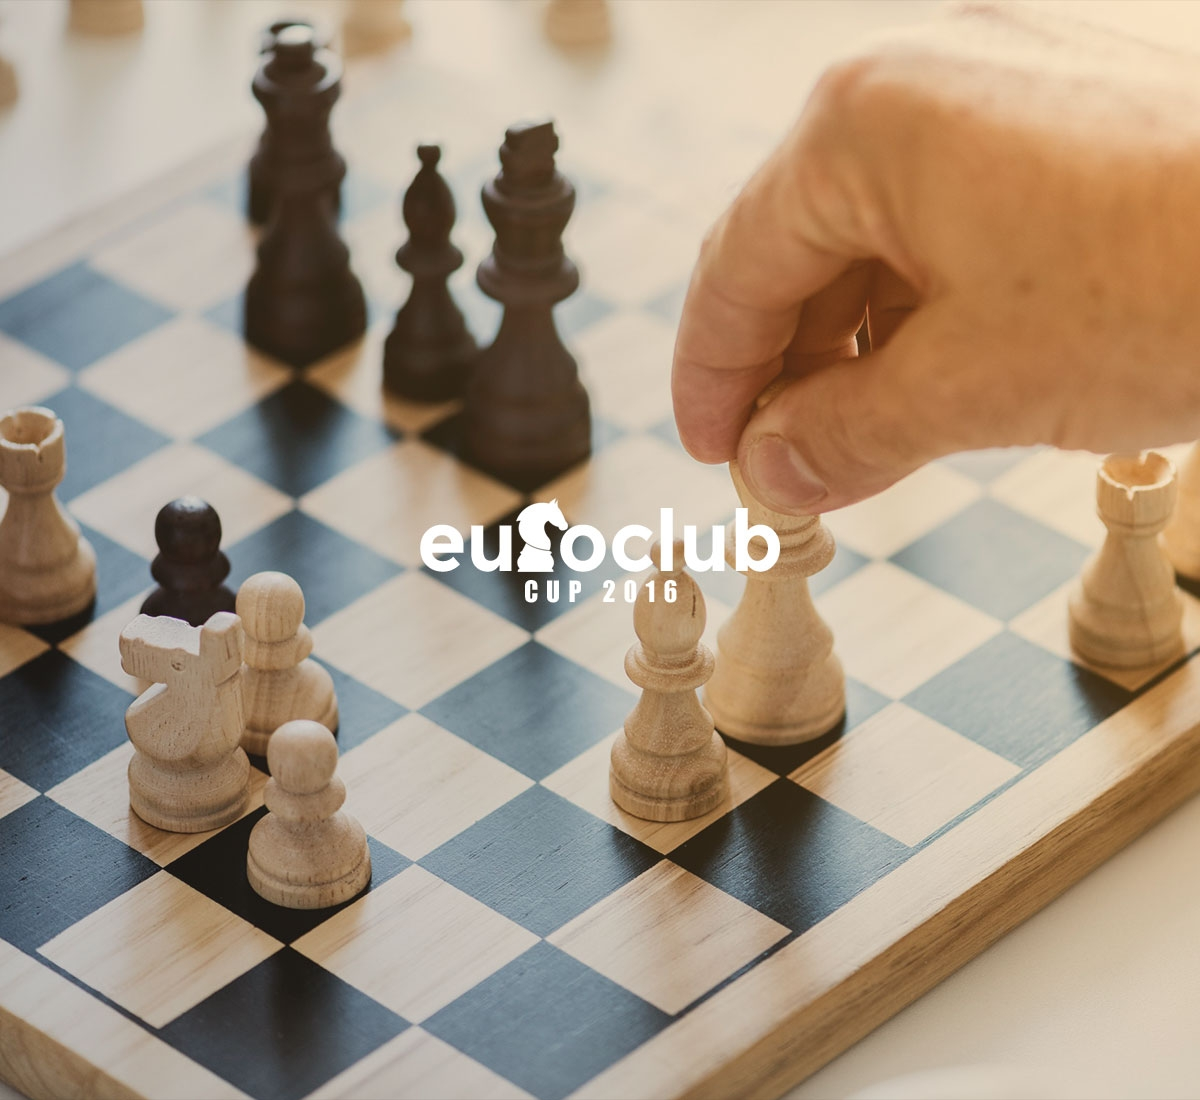 Euro Club Cup 2016 (@euroclubcup2016) Cover Image